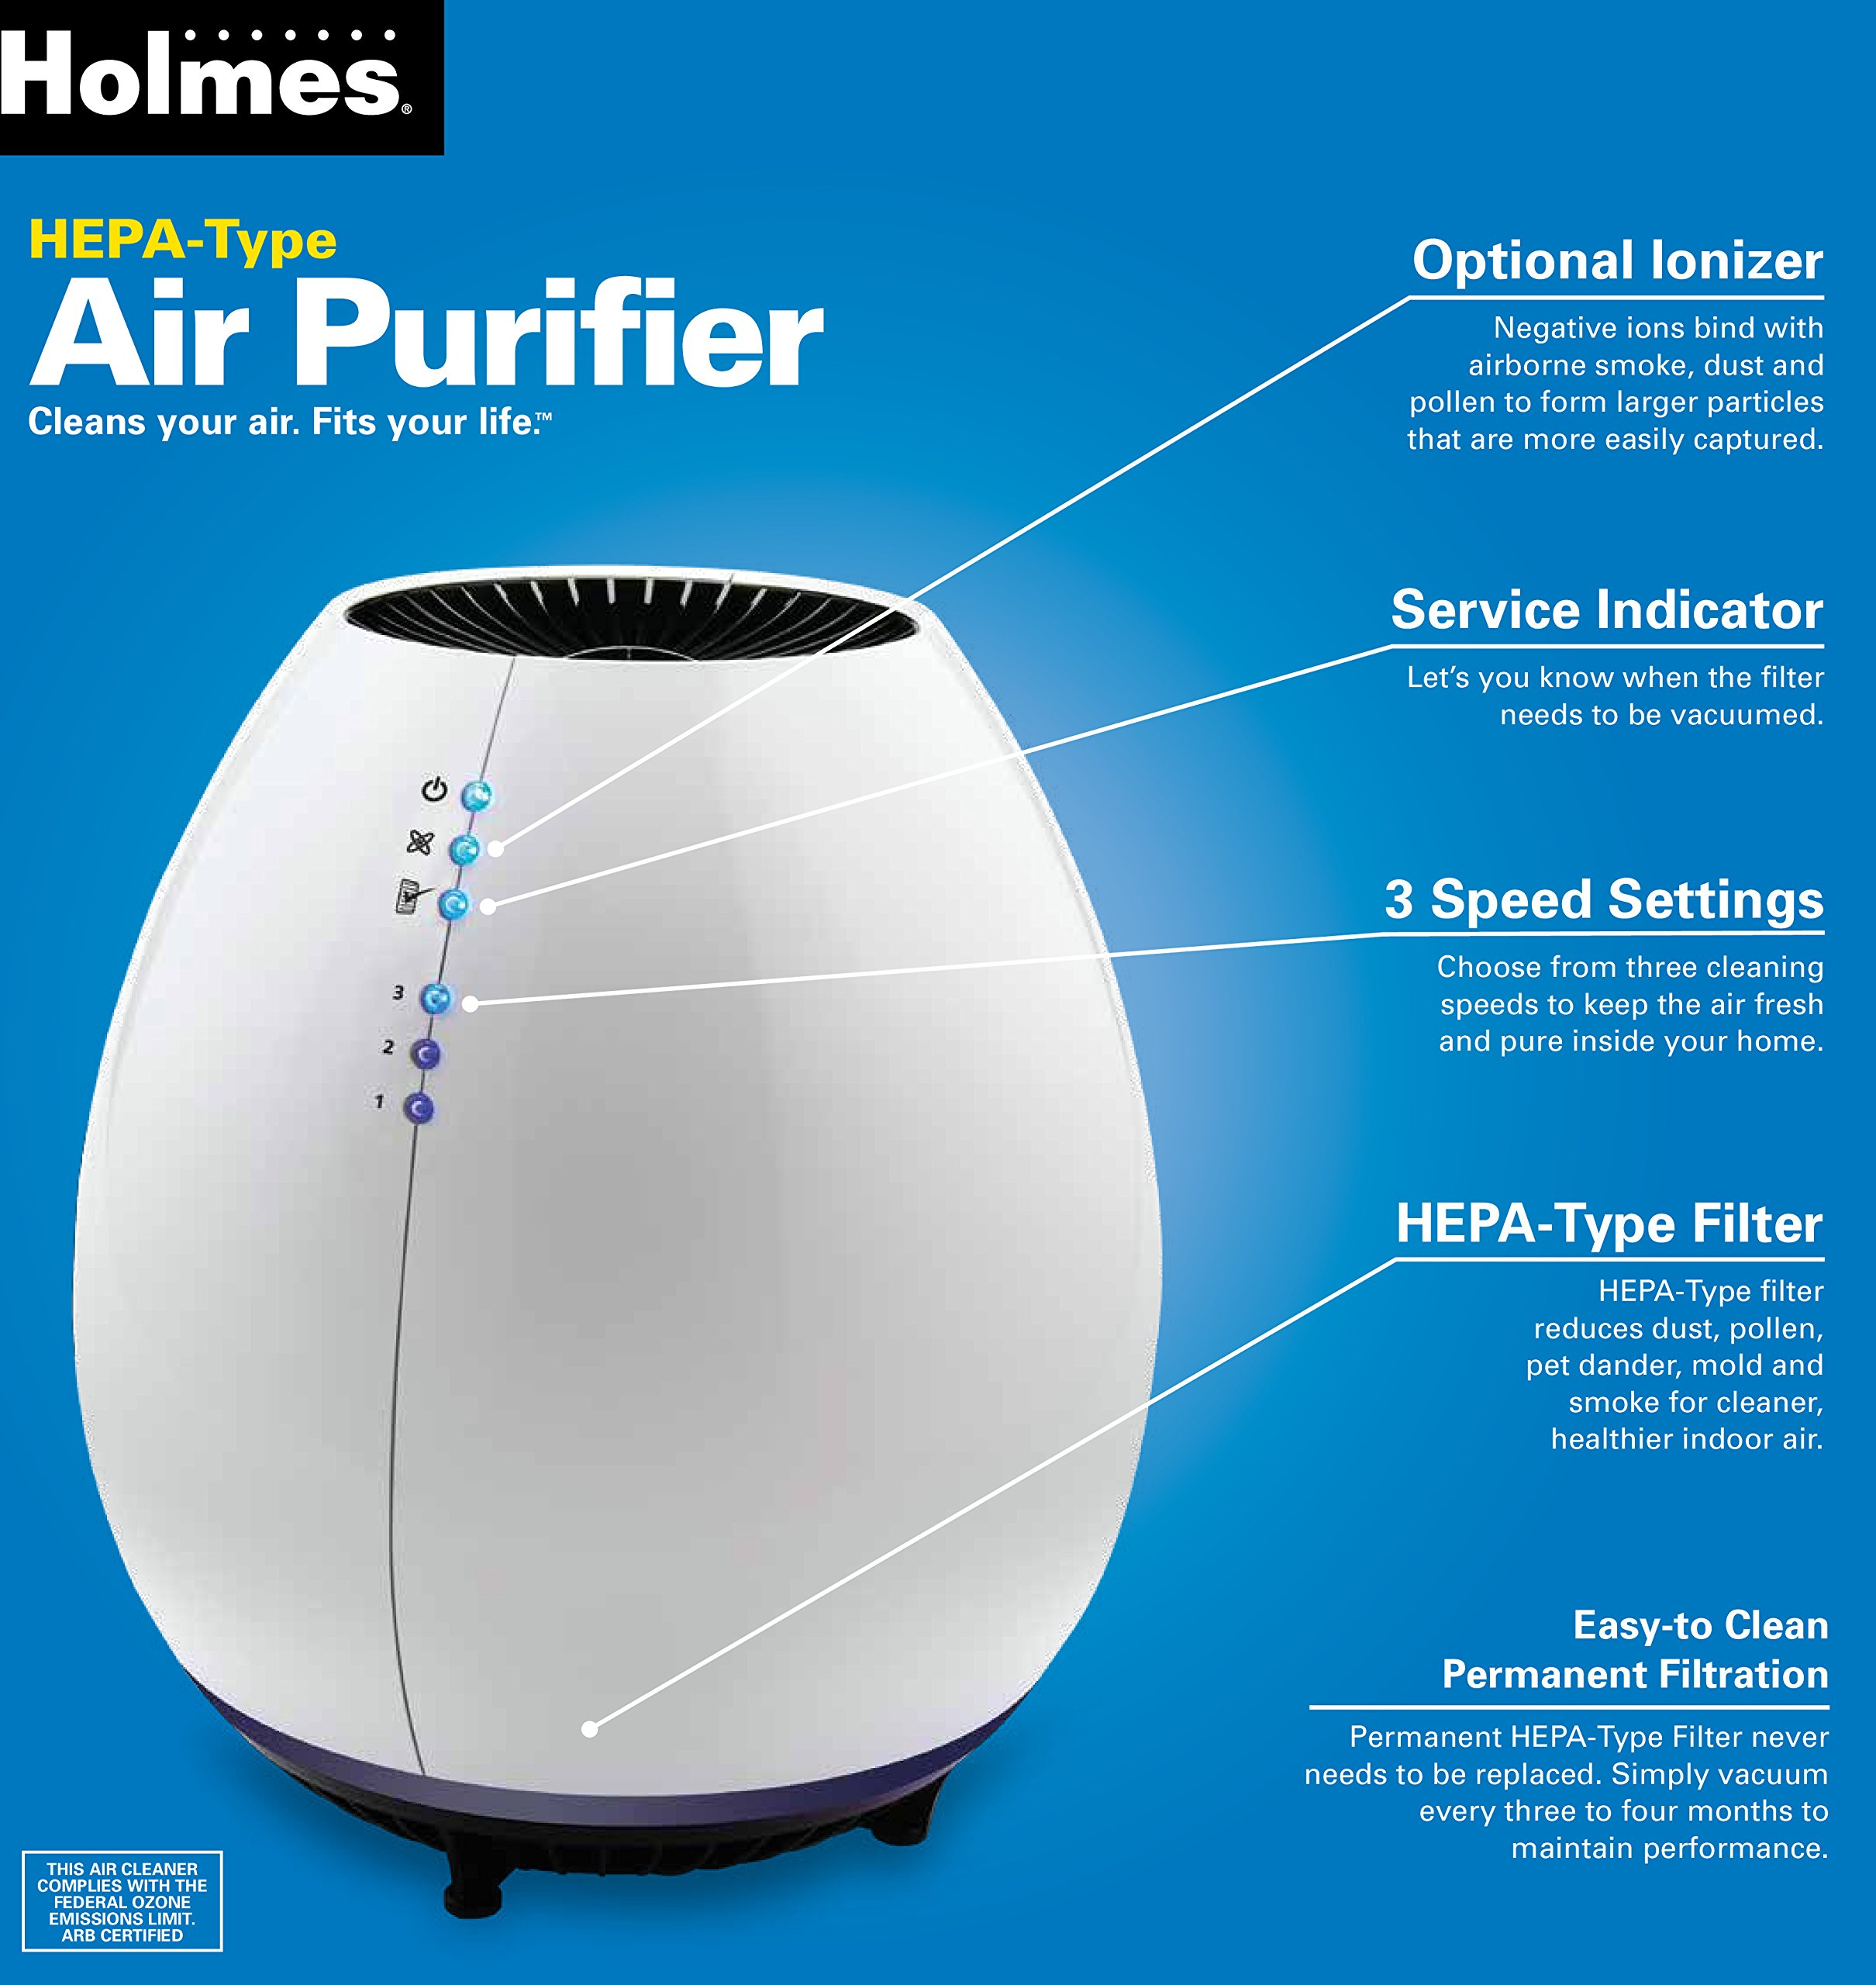 Holmes HAP601-U Egg Air Purifier with Permanent HEPA Type Filter